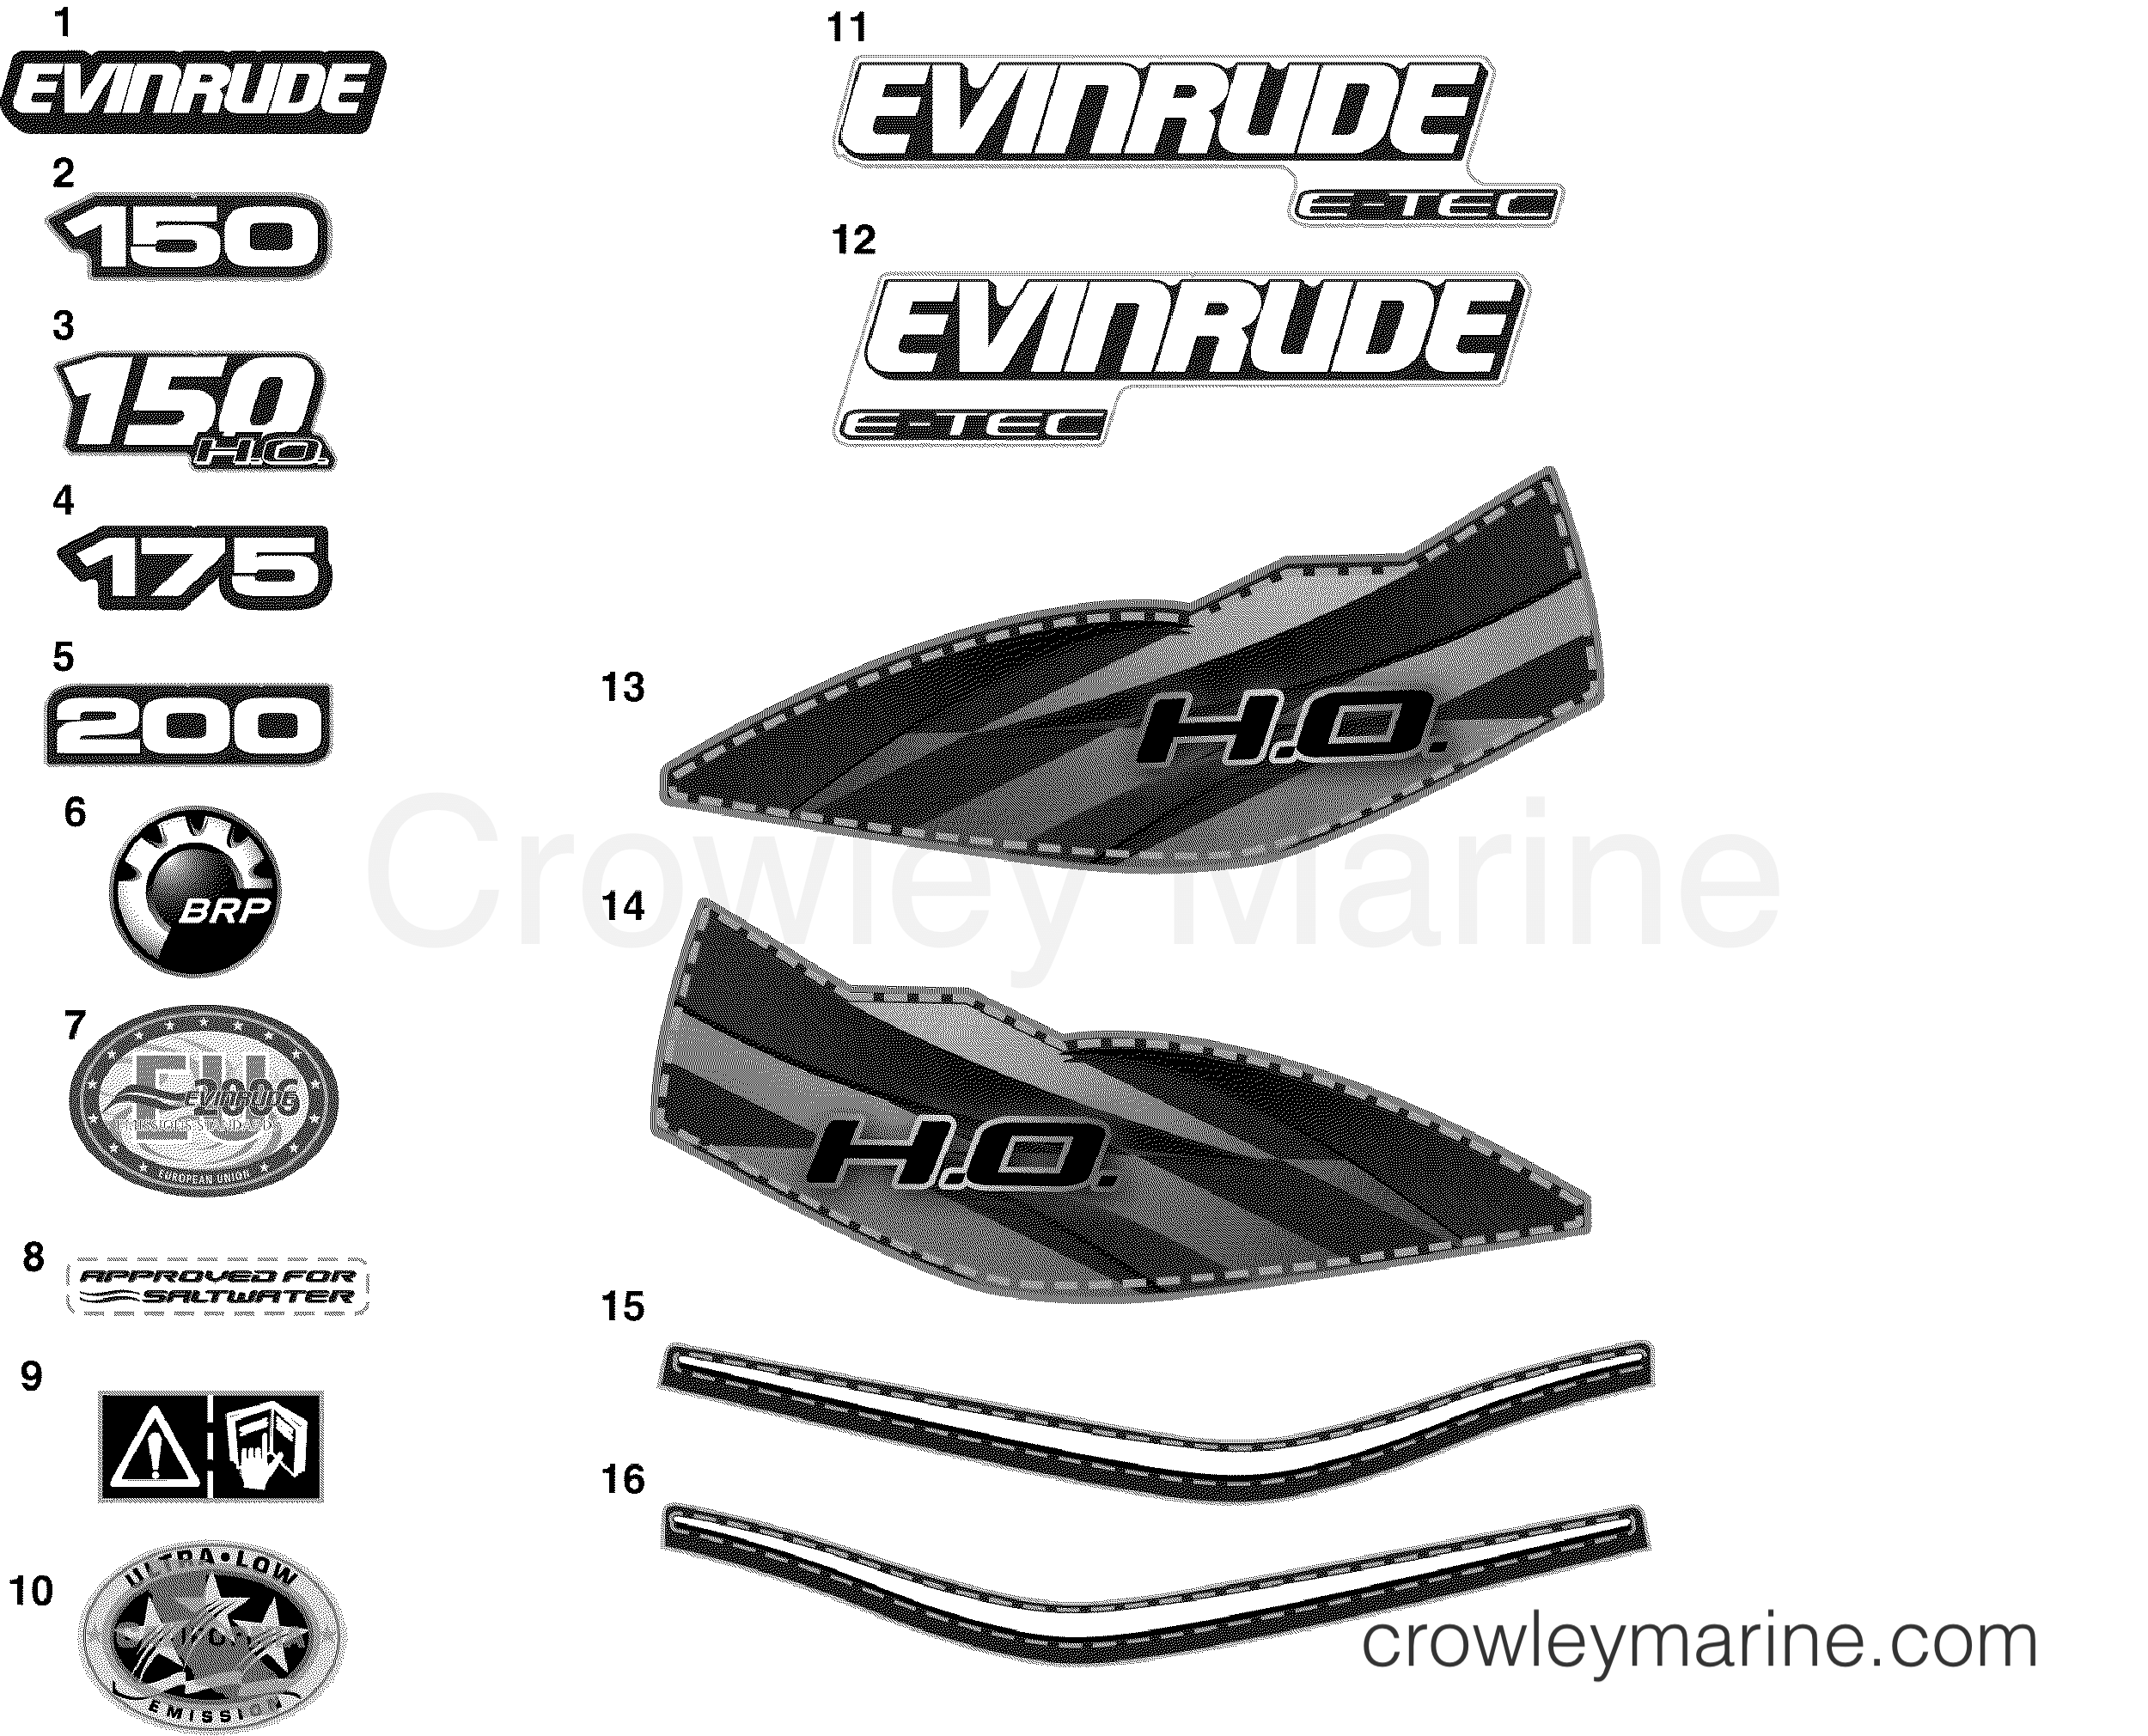 2010 Evinrude Outboards 150 - E150DBXISF DECALS section